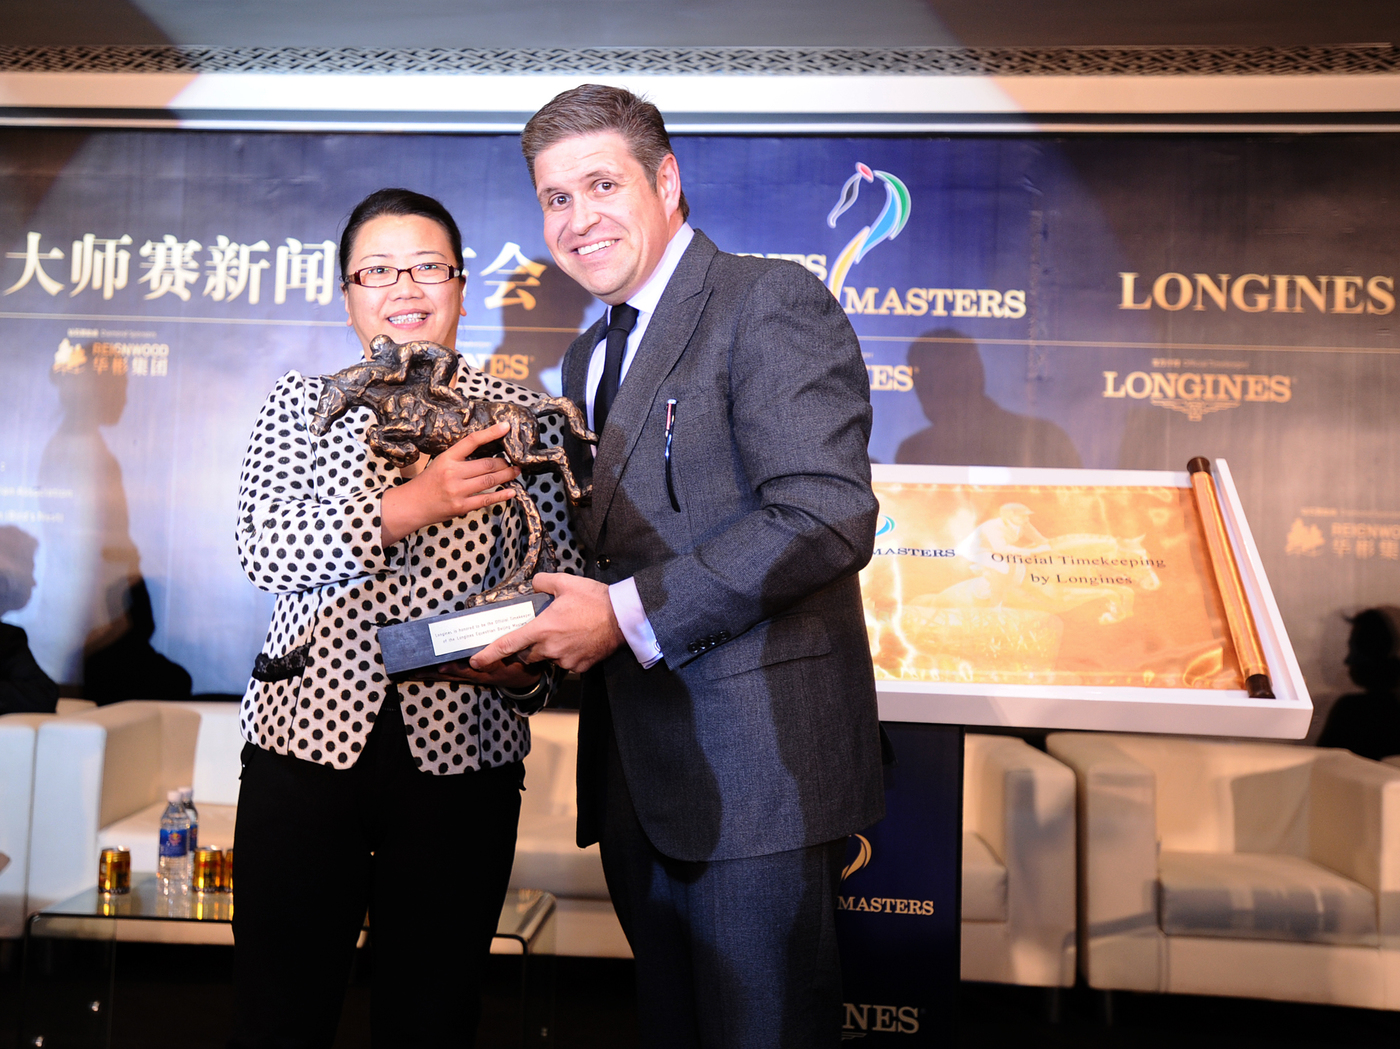 Longines Flat Racing Event: World's Best Riders to Assemble for Asia's Top Equestrian Competition at the Bird's Nest 2